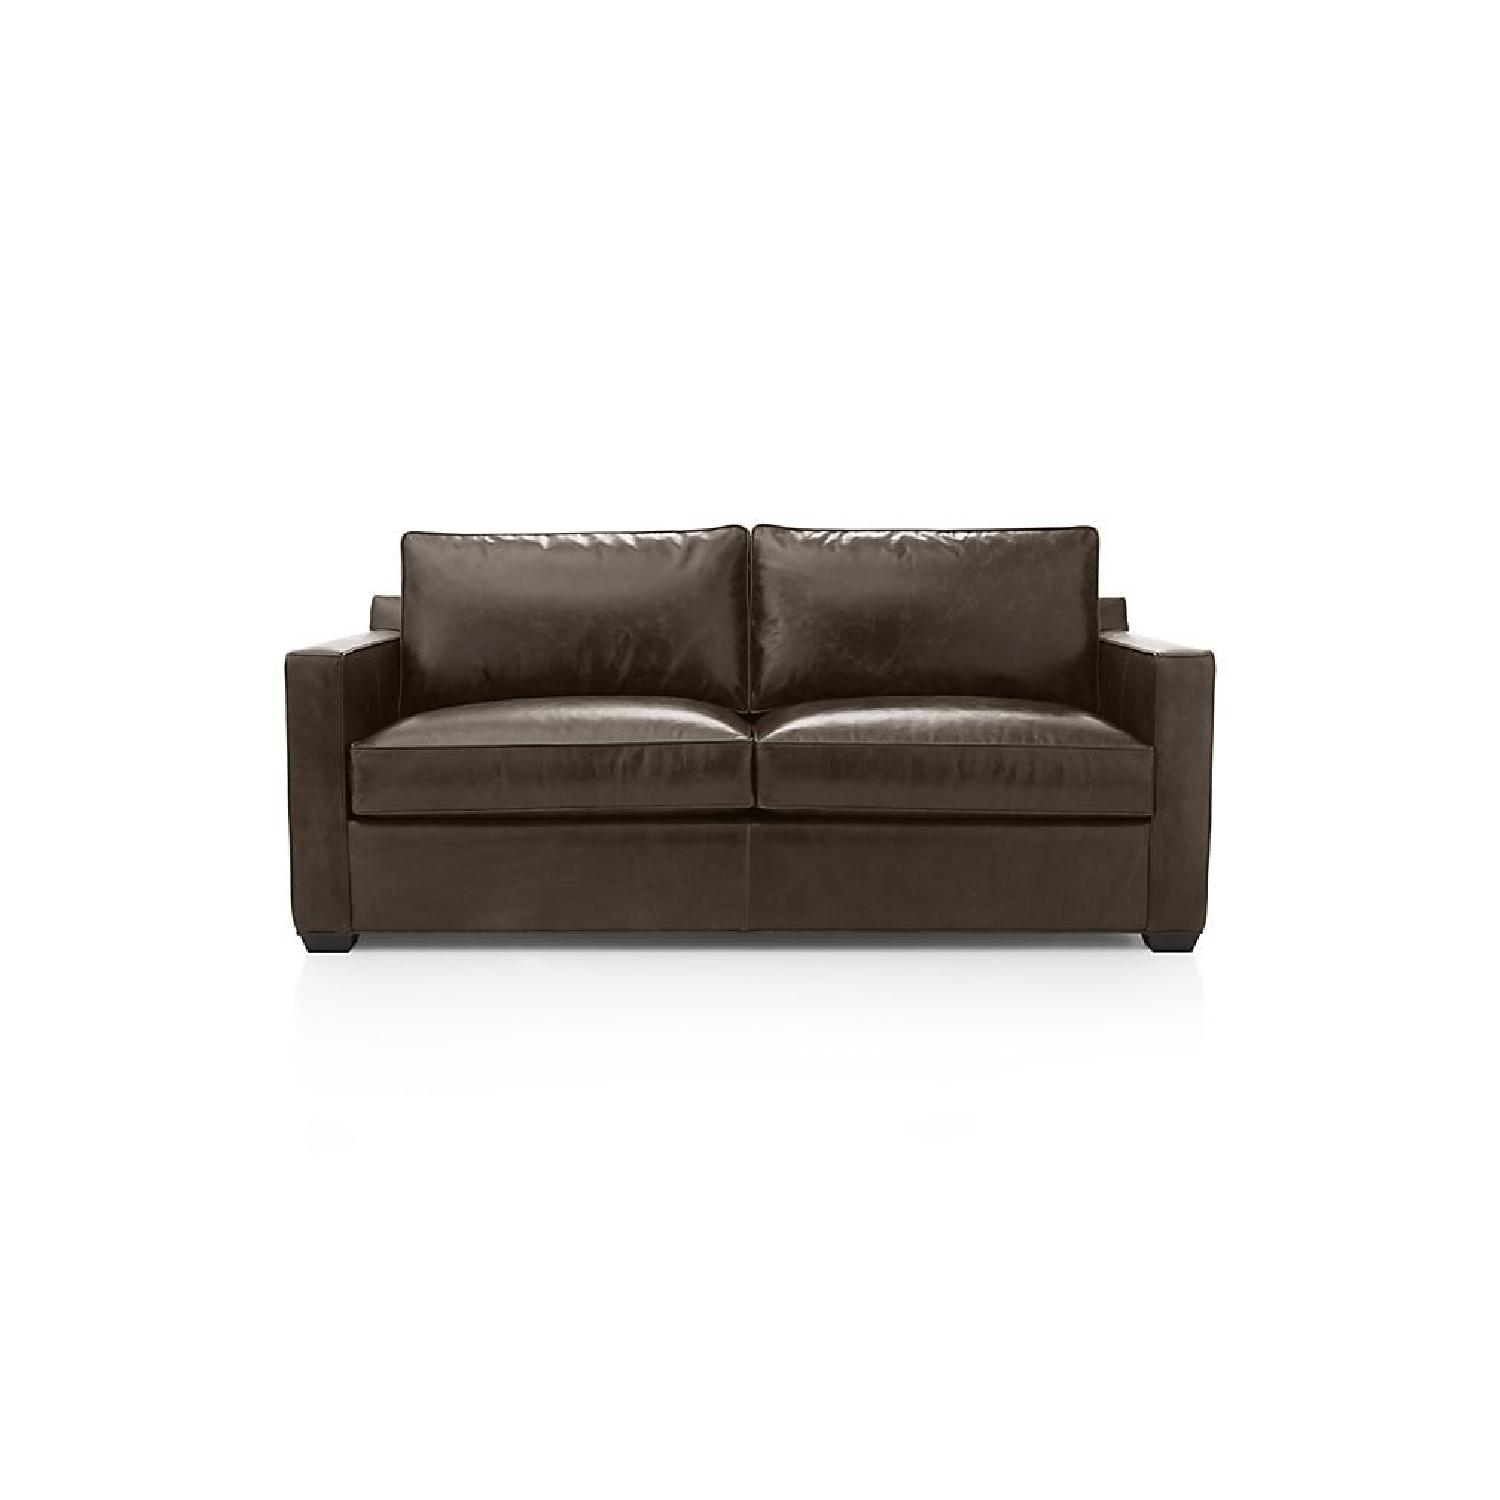 American Leather Queen Size Sleeper Sofa